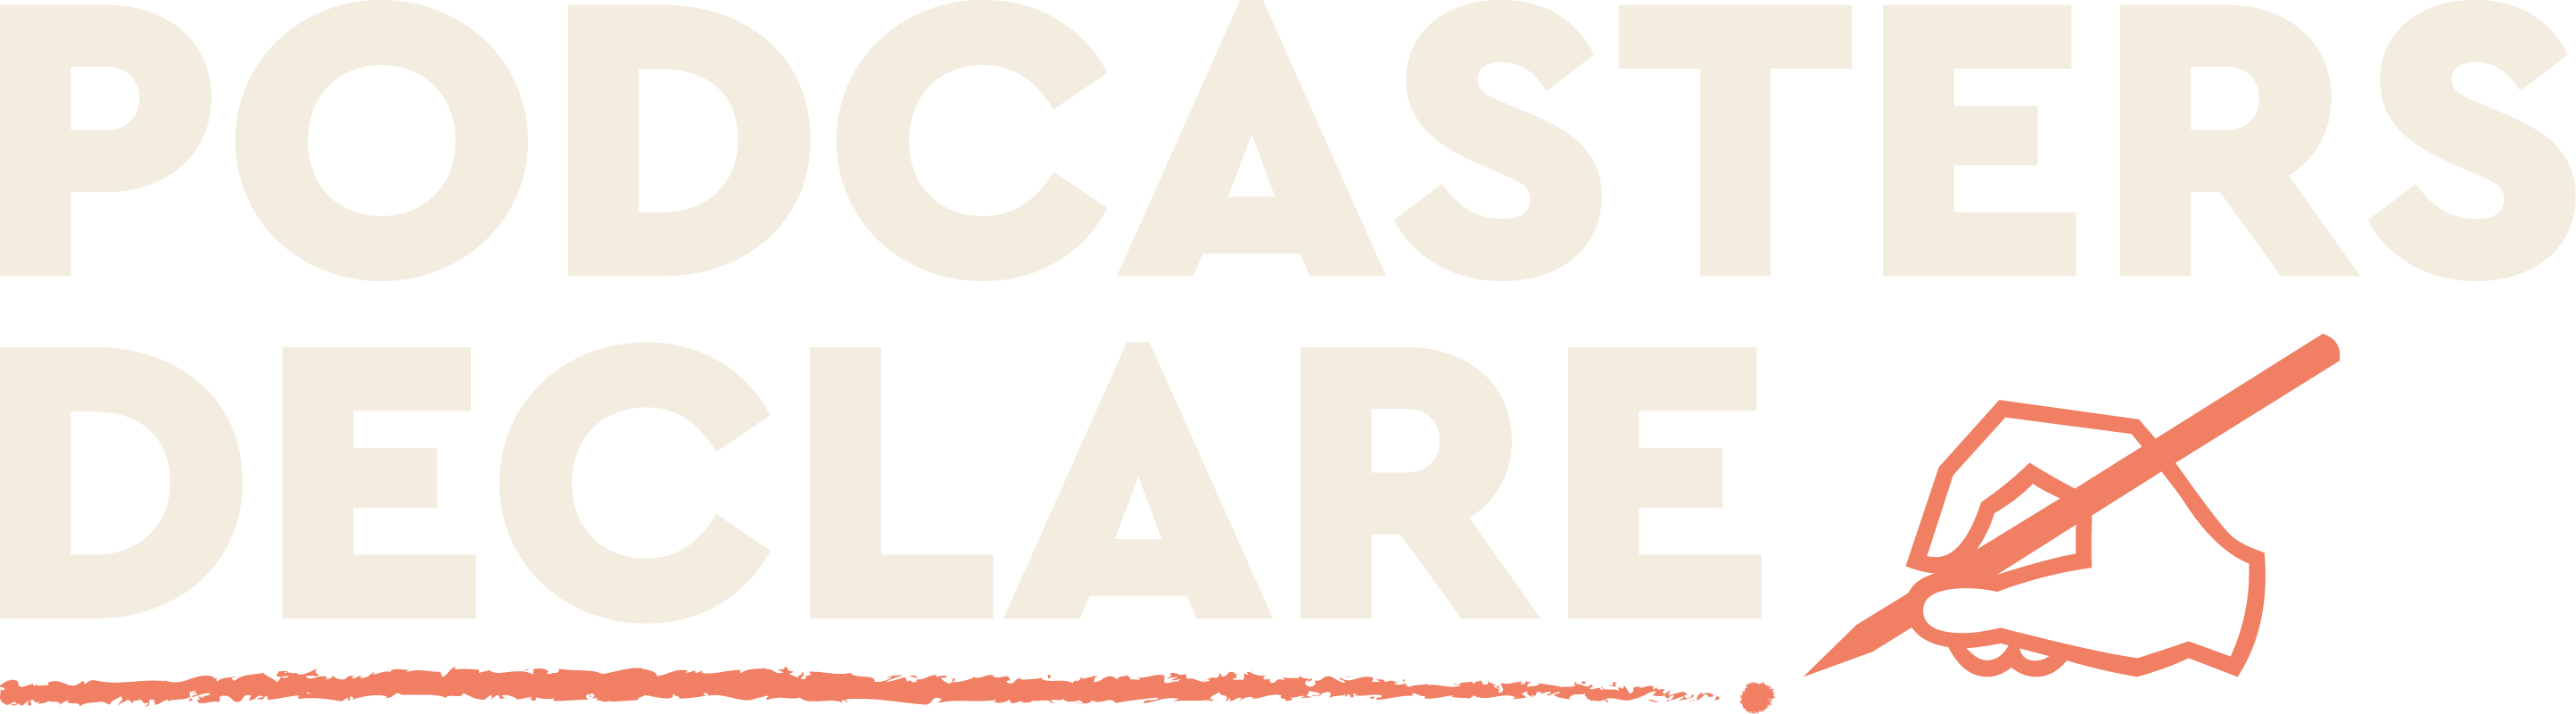 Podcasters Declare logo